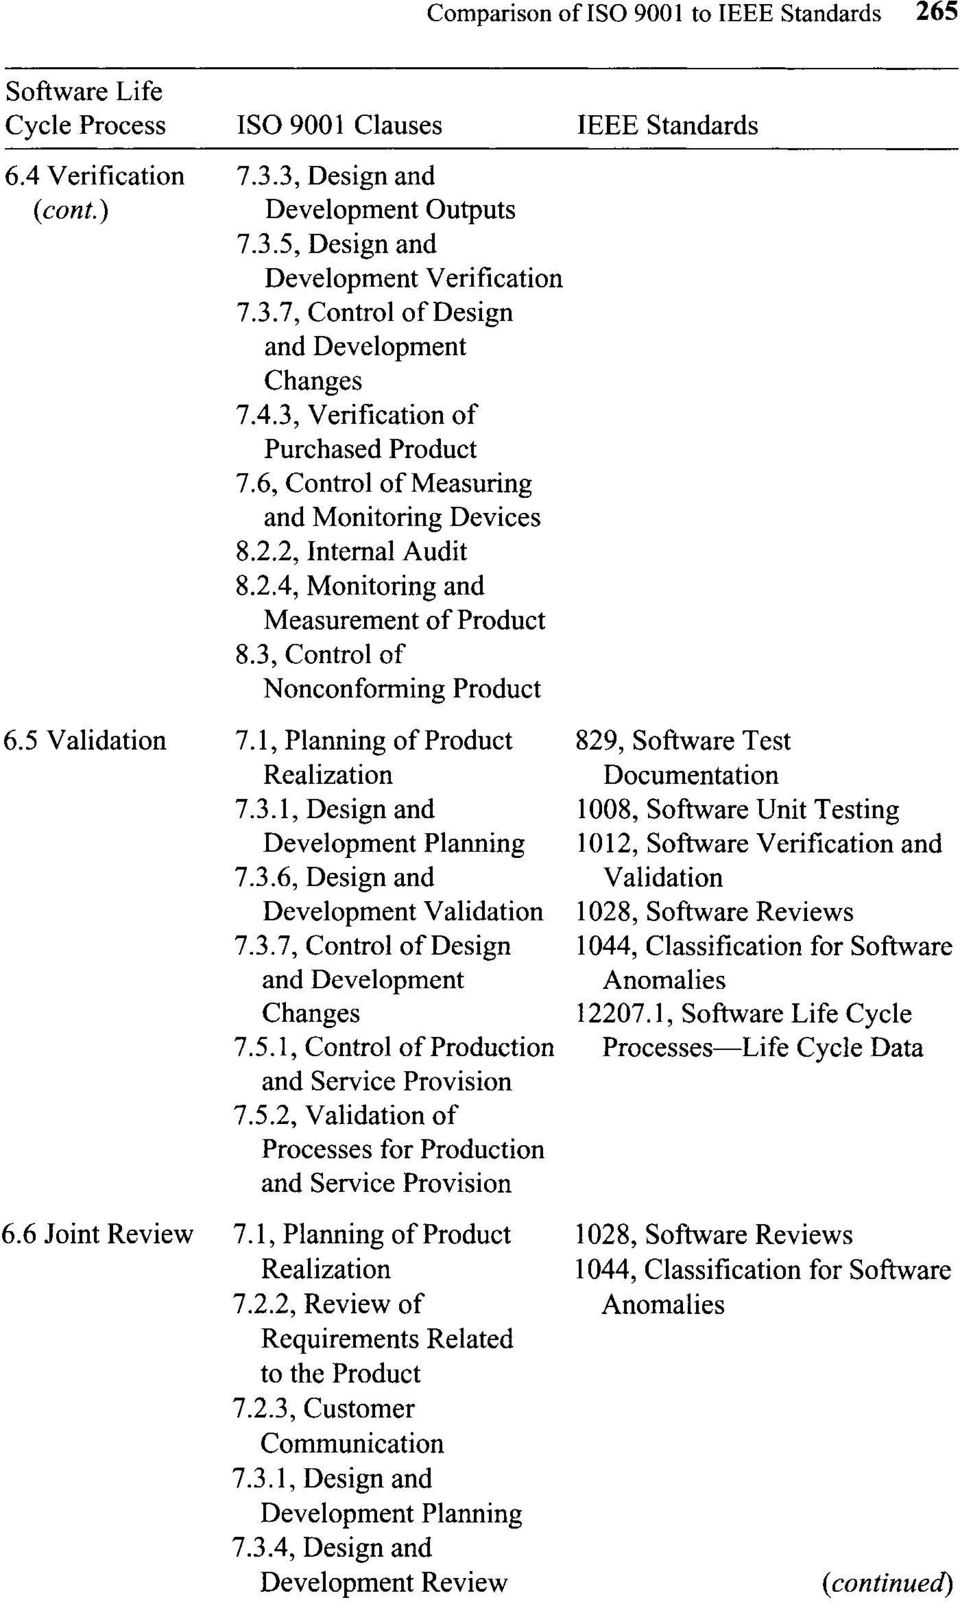 3, Control of Nonconforming Product Validation and 7.5.2, Validation of for Production 7.2.2, Review of Related 7.2.3, Customer Communication 7.